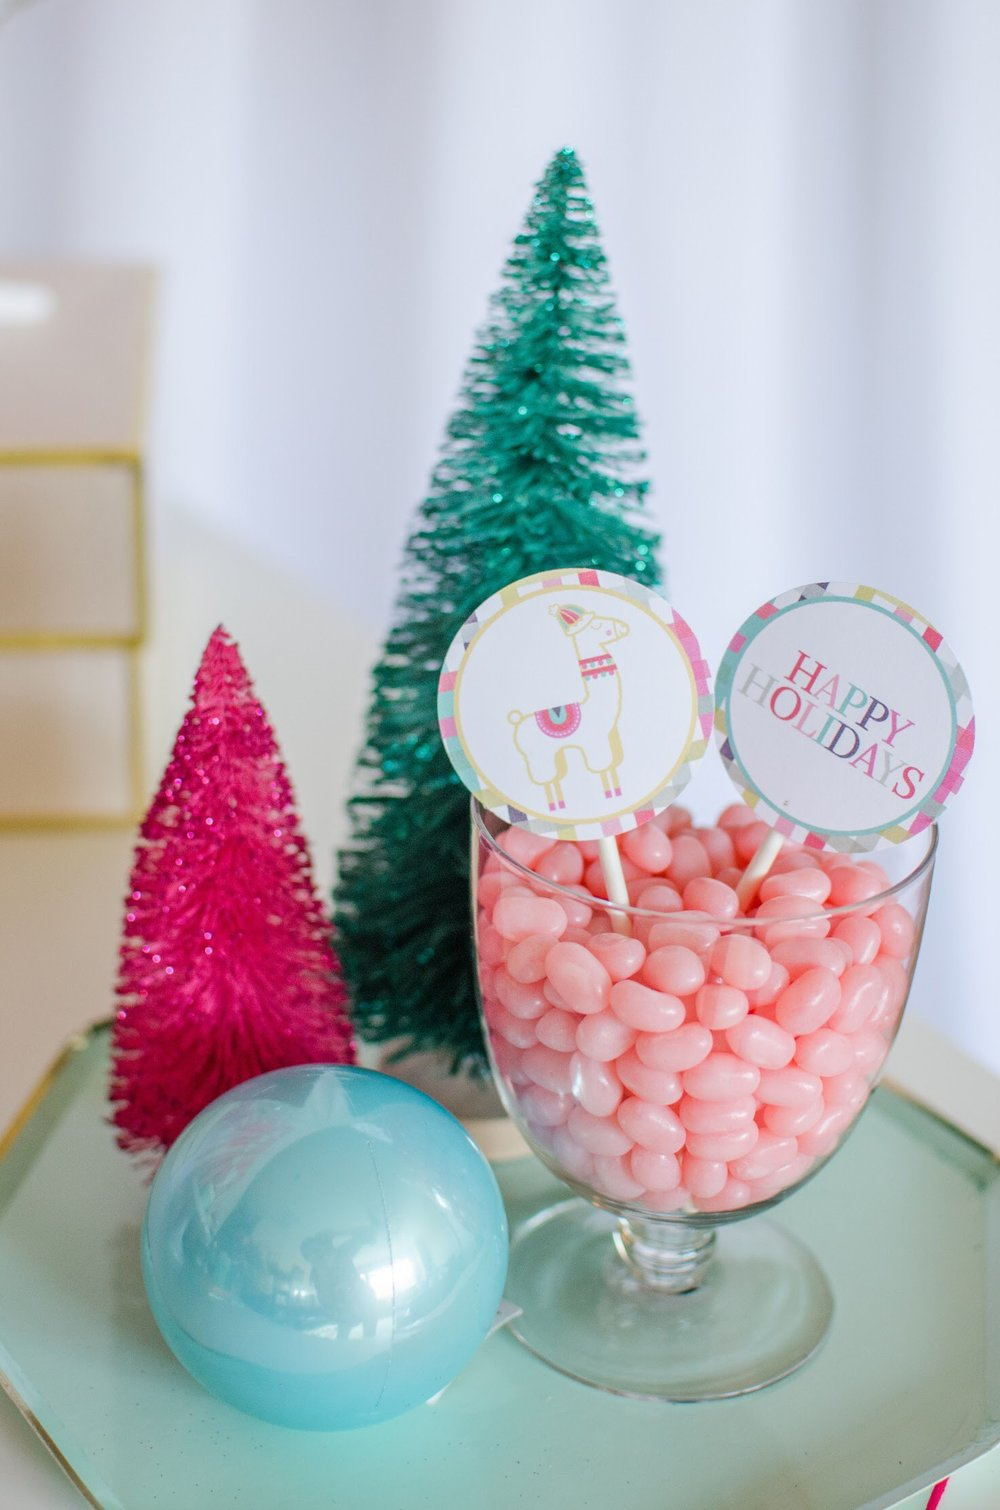 Colorful candy and bottle brush trees dresses up the sweets table at this fa la la la llama holiday party from Mint Event Design. See more from this llama Christmas party at www.minteventdesign.com and download your free printables #holidayparty #partyideas #christmasparty #holidaypartyideas #llamaparty #llamalove